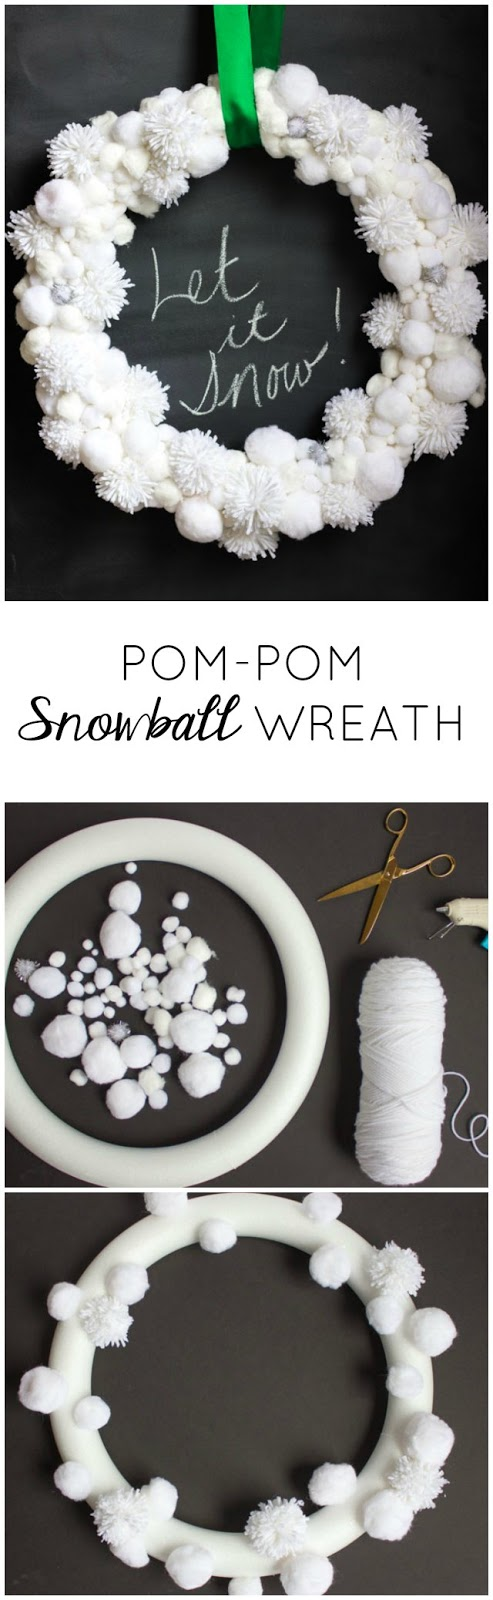 Make this pretty Christmas snowball wreath from white pom-poms!